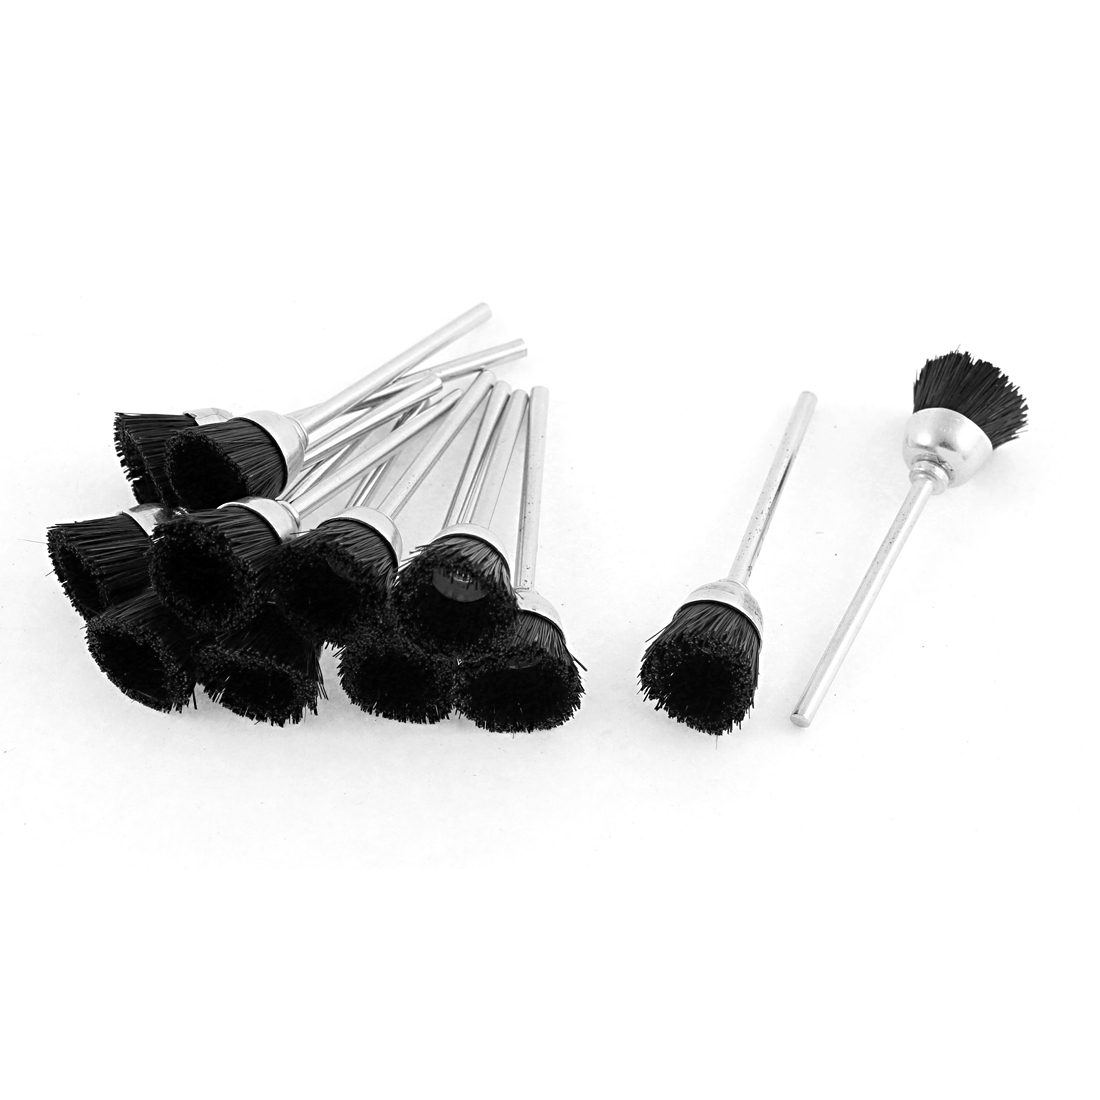 Black Nylon Bristle Polishing Brushes Jewelry Cleaning Buffing Tools 12pcs